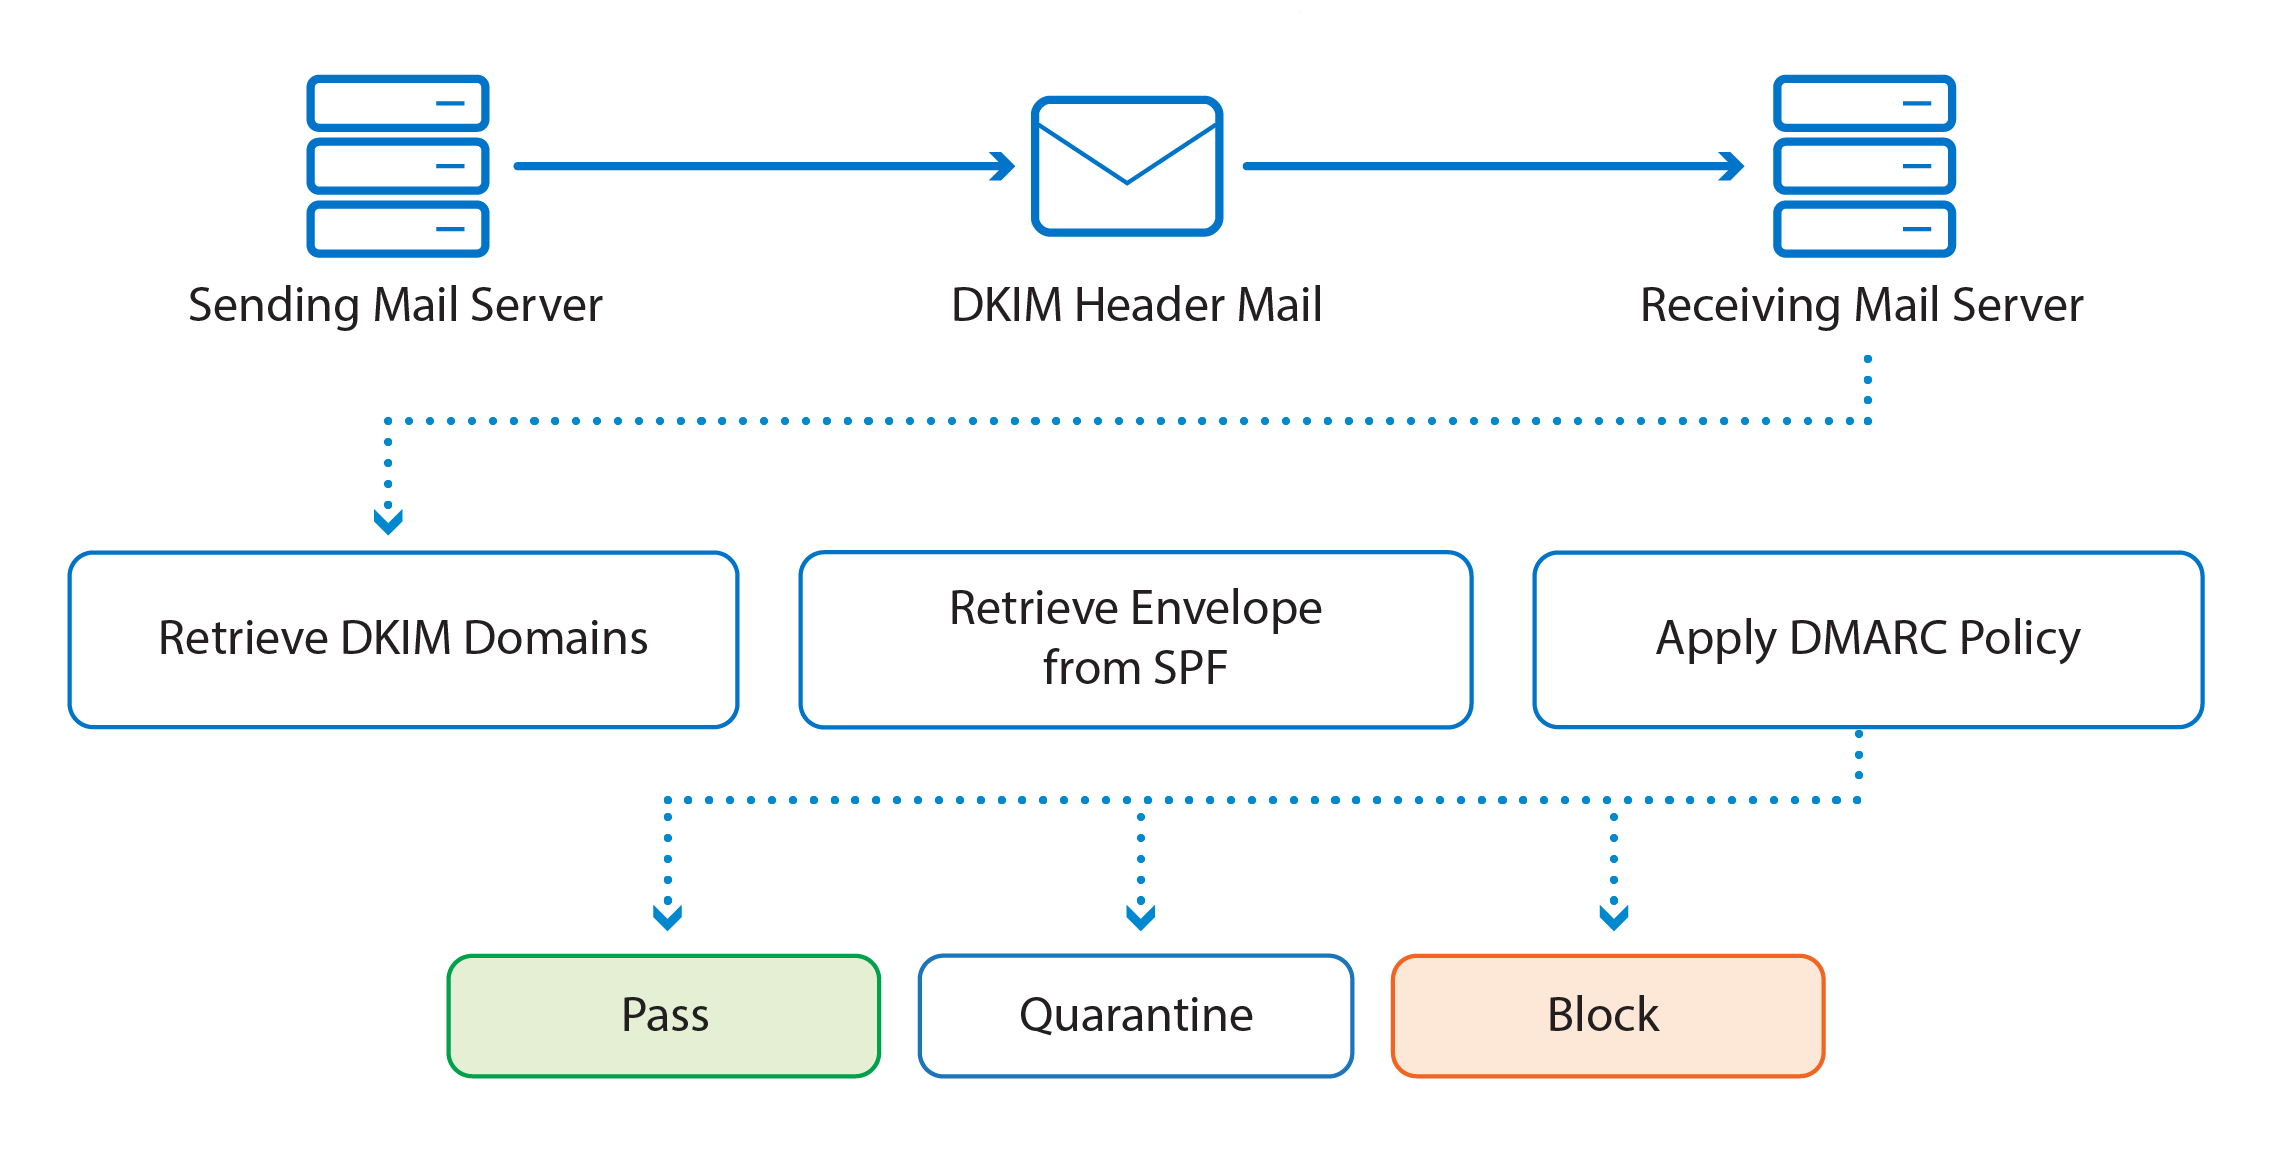 DMARC policy diagram